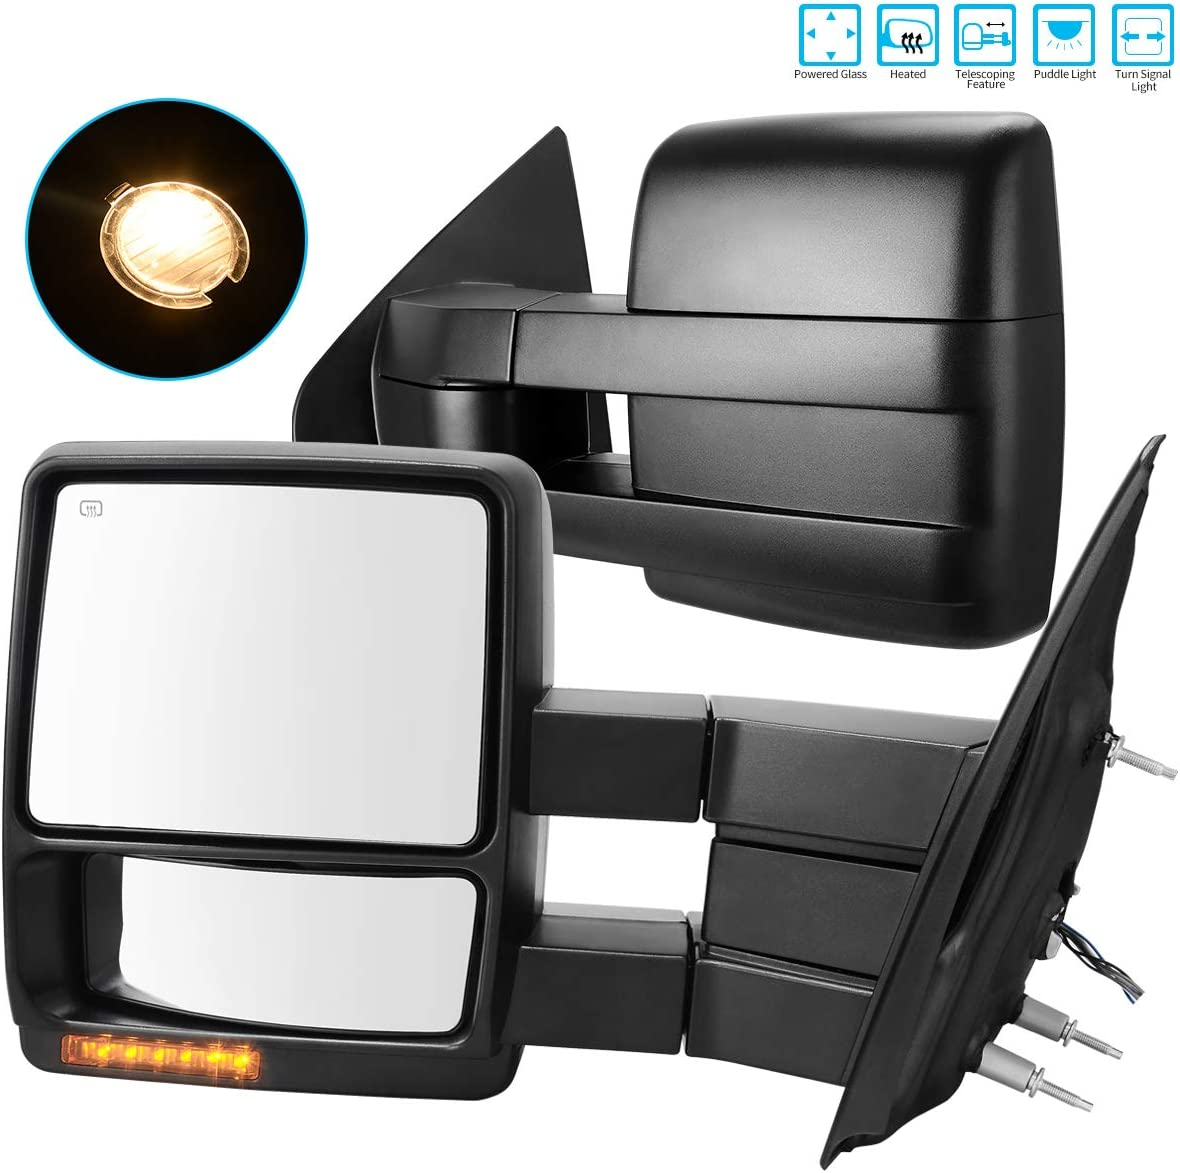 Trailer Tow Mirrors w//Power Electric Controlling Heated Glass Turn Signal and Puddle Lamp AUTOSAVER88 Towing Mirrors Compatible with 07-14 Ford F150 Truck Manual Telescoping and Folding Side Mirror